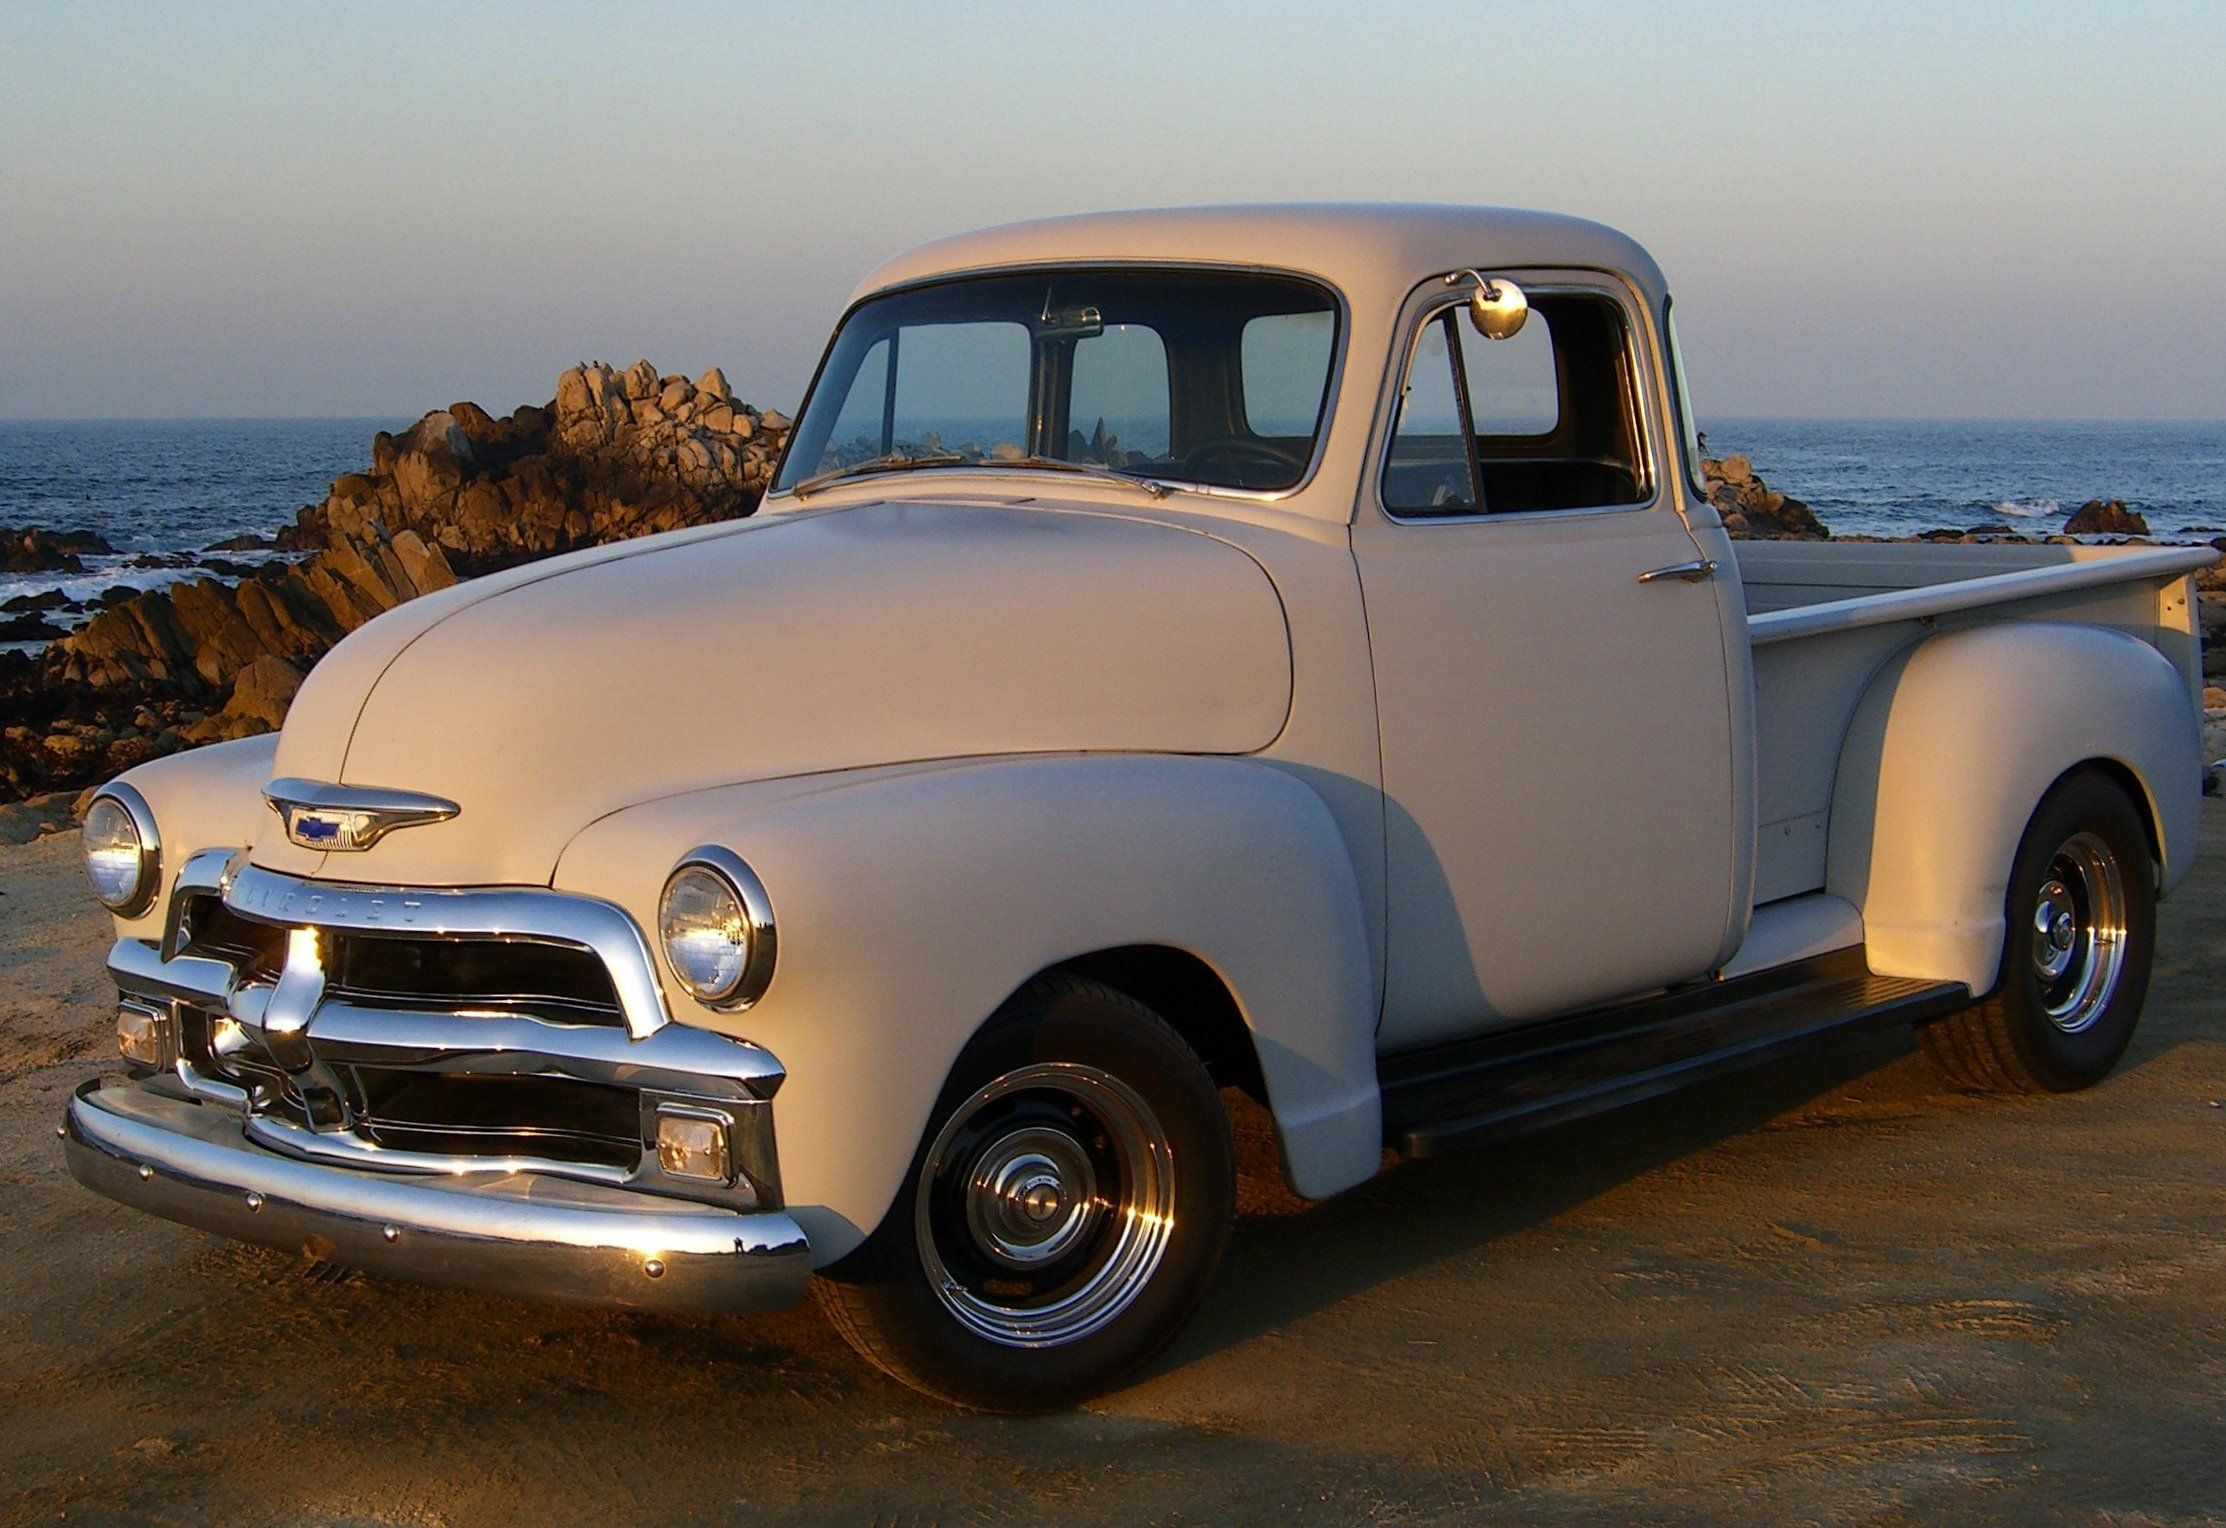 1955 first series identical to the 1954 model year except redesigned hood side